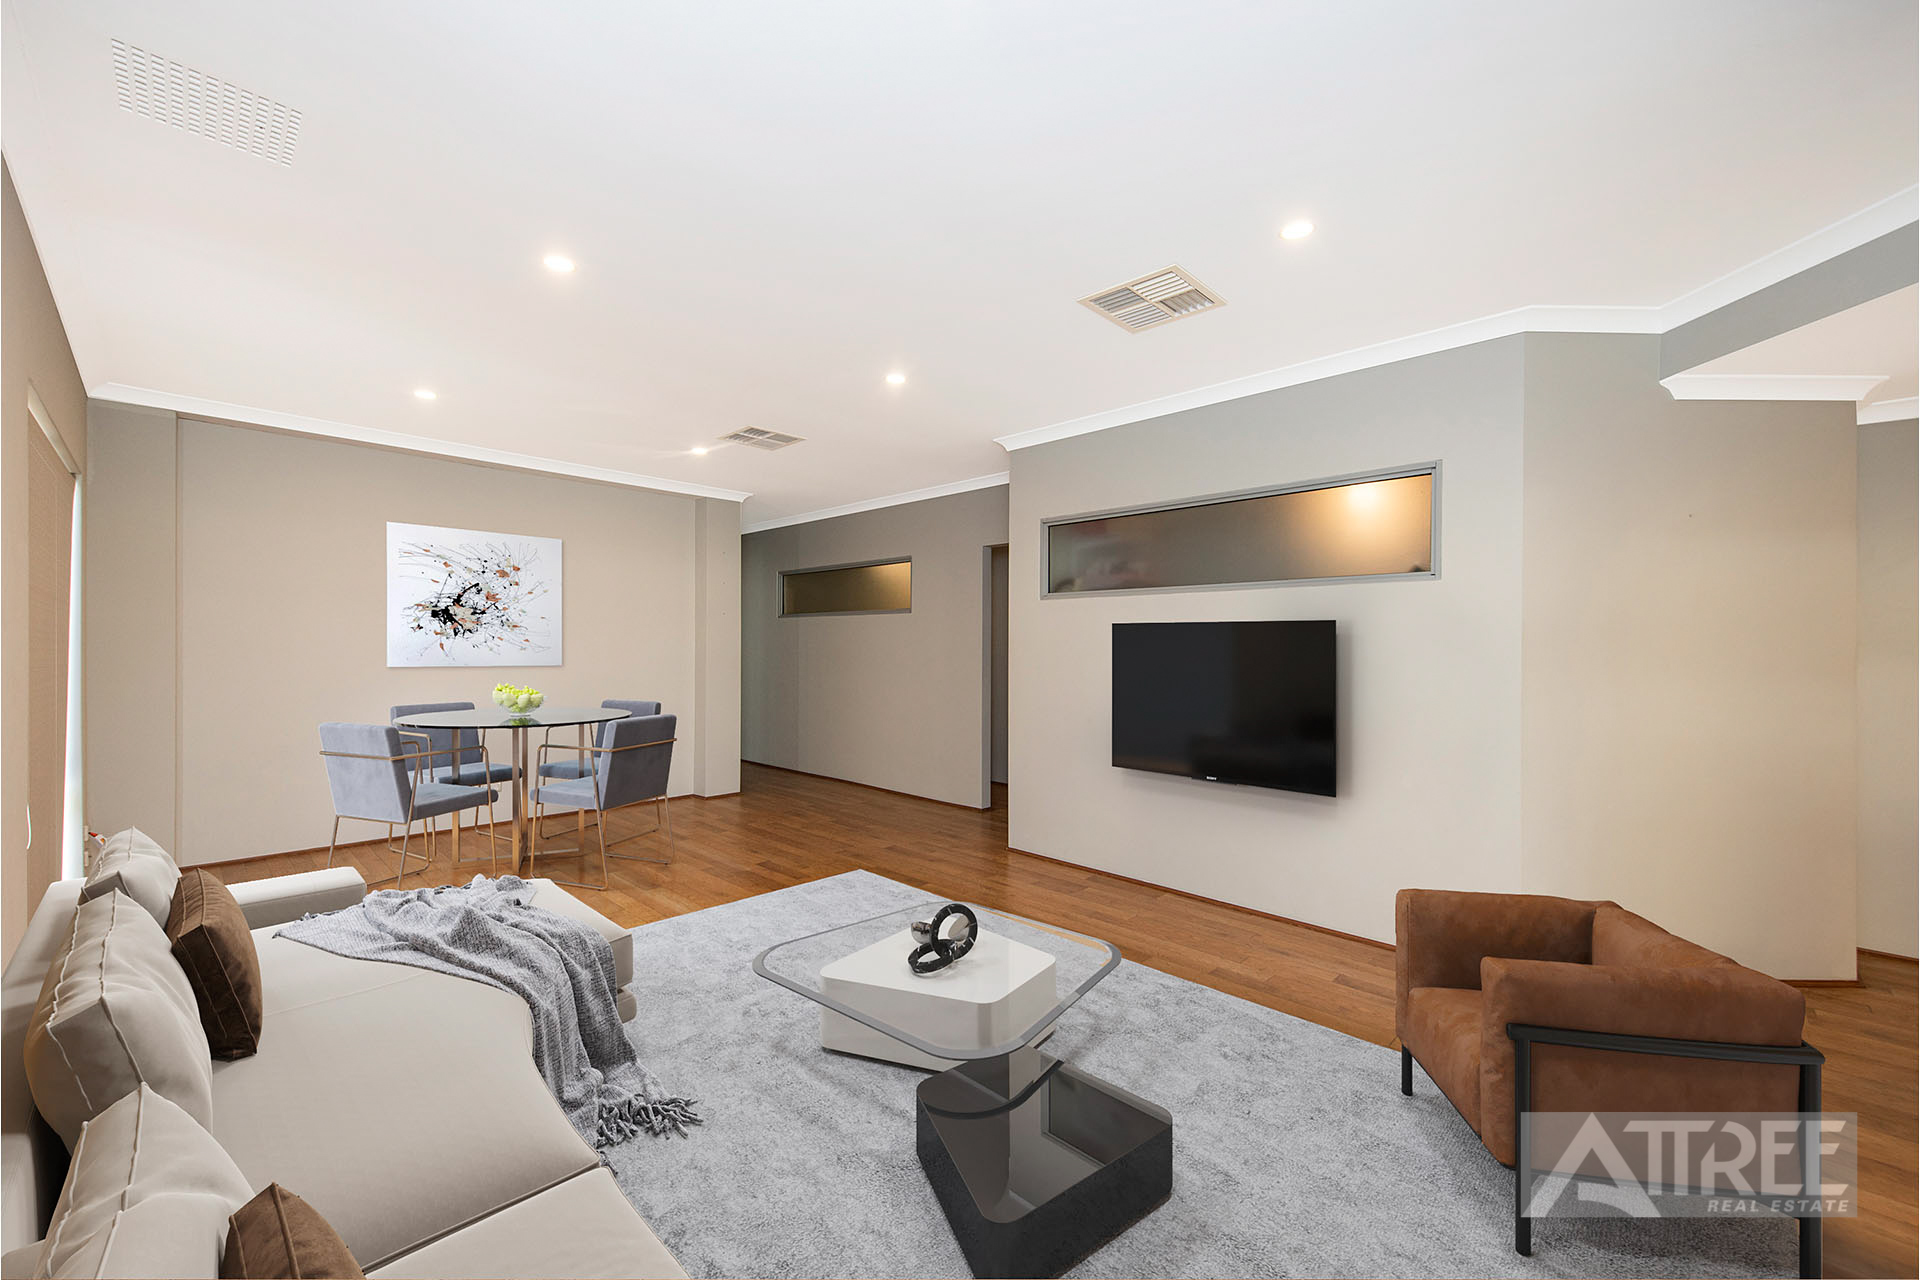 Property for sale in CANNING VALE, 2 Fulbrooke Loop : Attree Real Estate